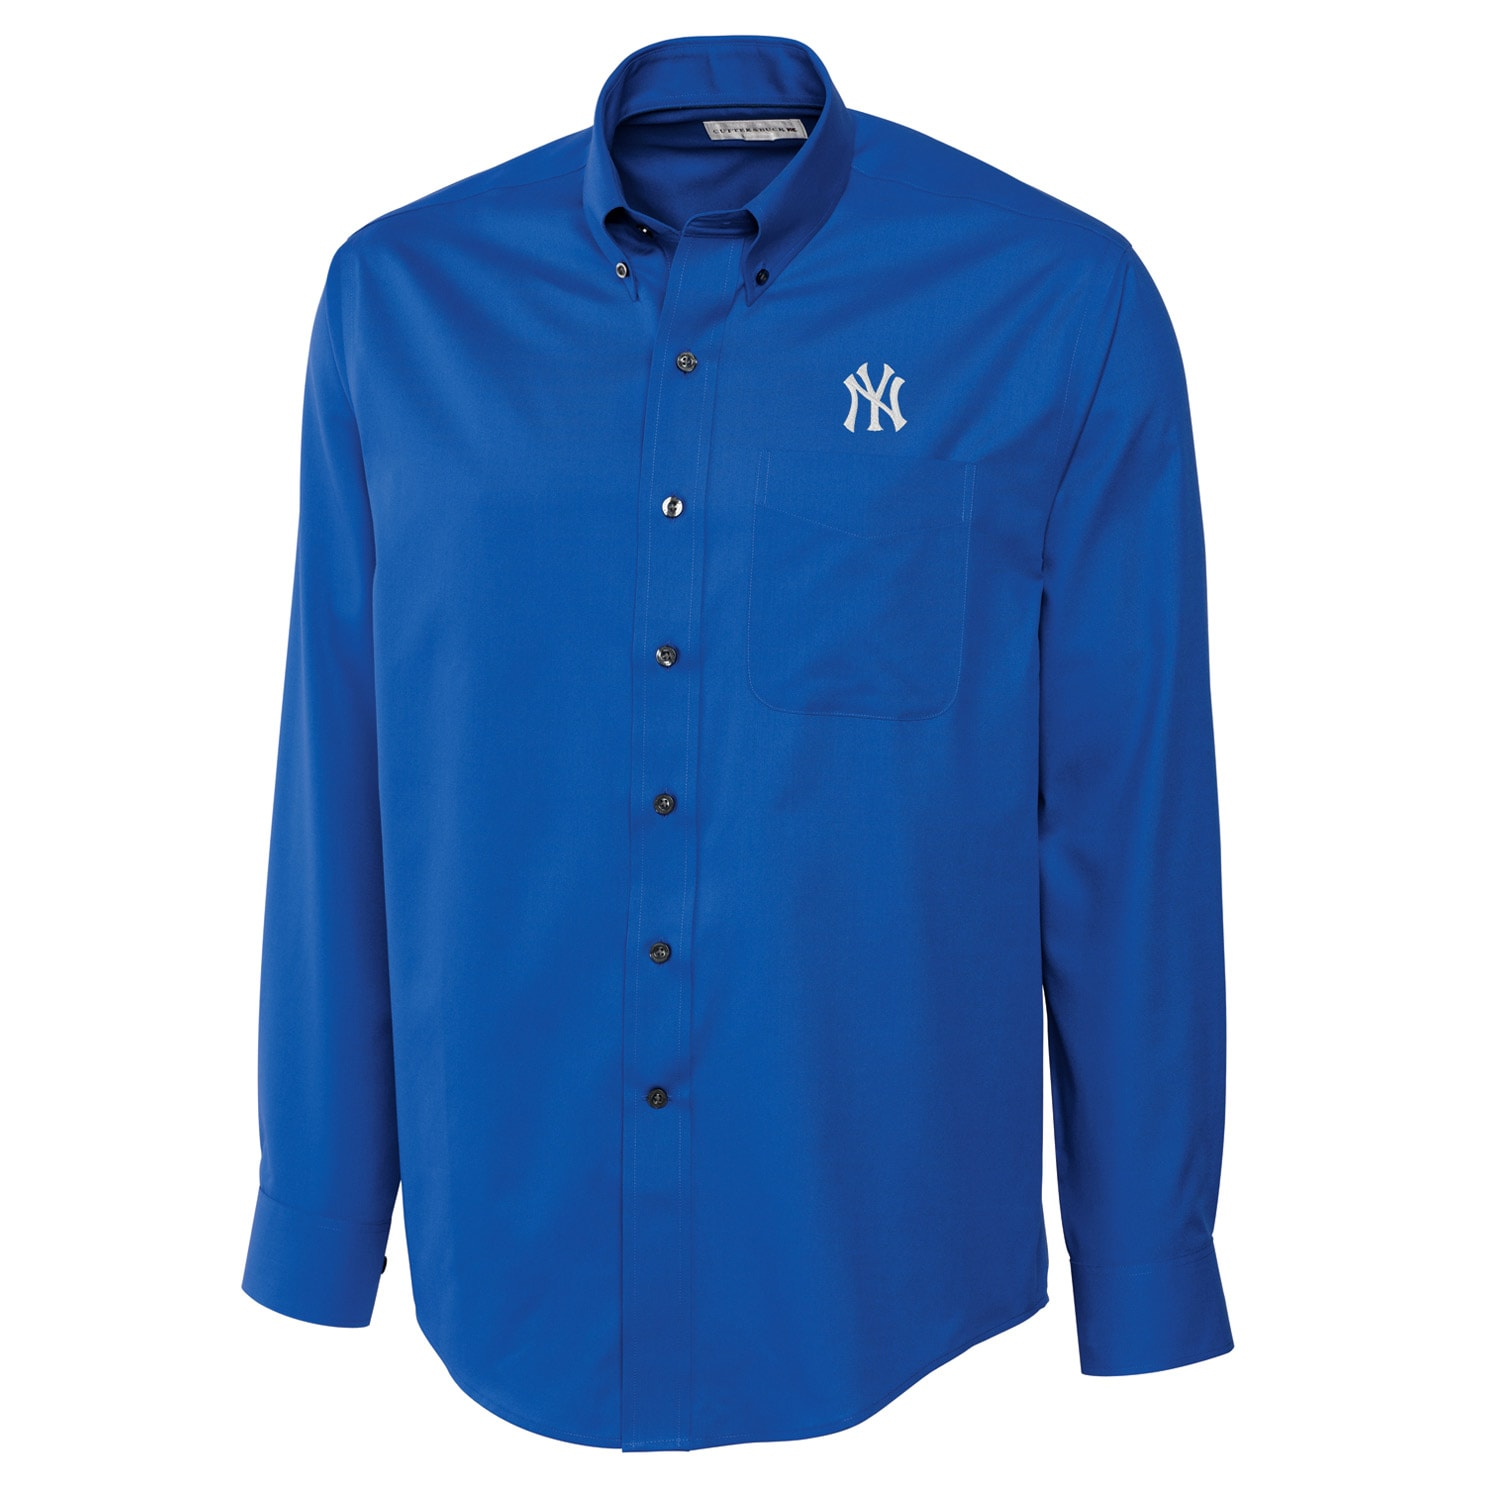 New York Yankees Cutter & Buck Big & Tall Epic Easy Care Fine Twill Long Sleeve Shirt - Royal